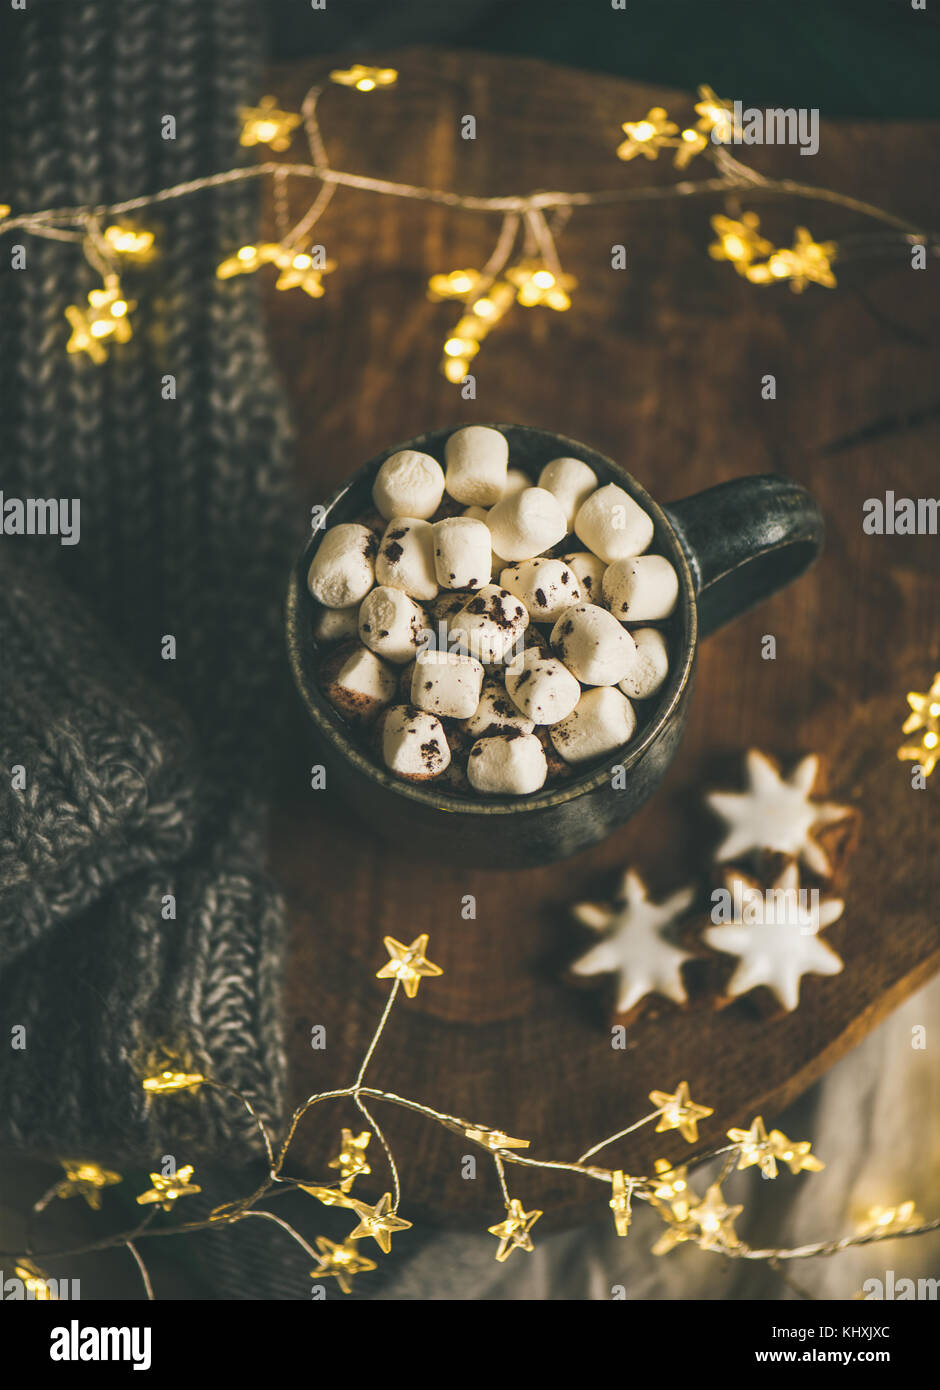 Christmas winter hot chocolate served with light garland, top view - Stock Image